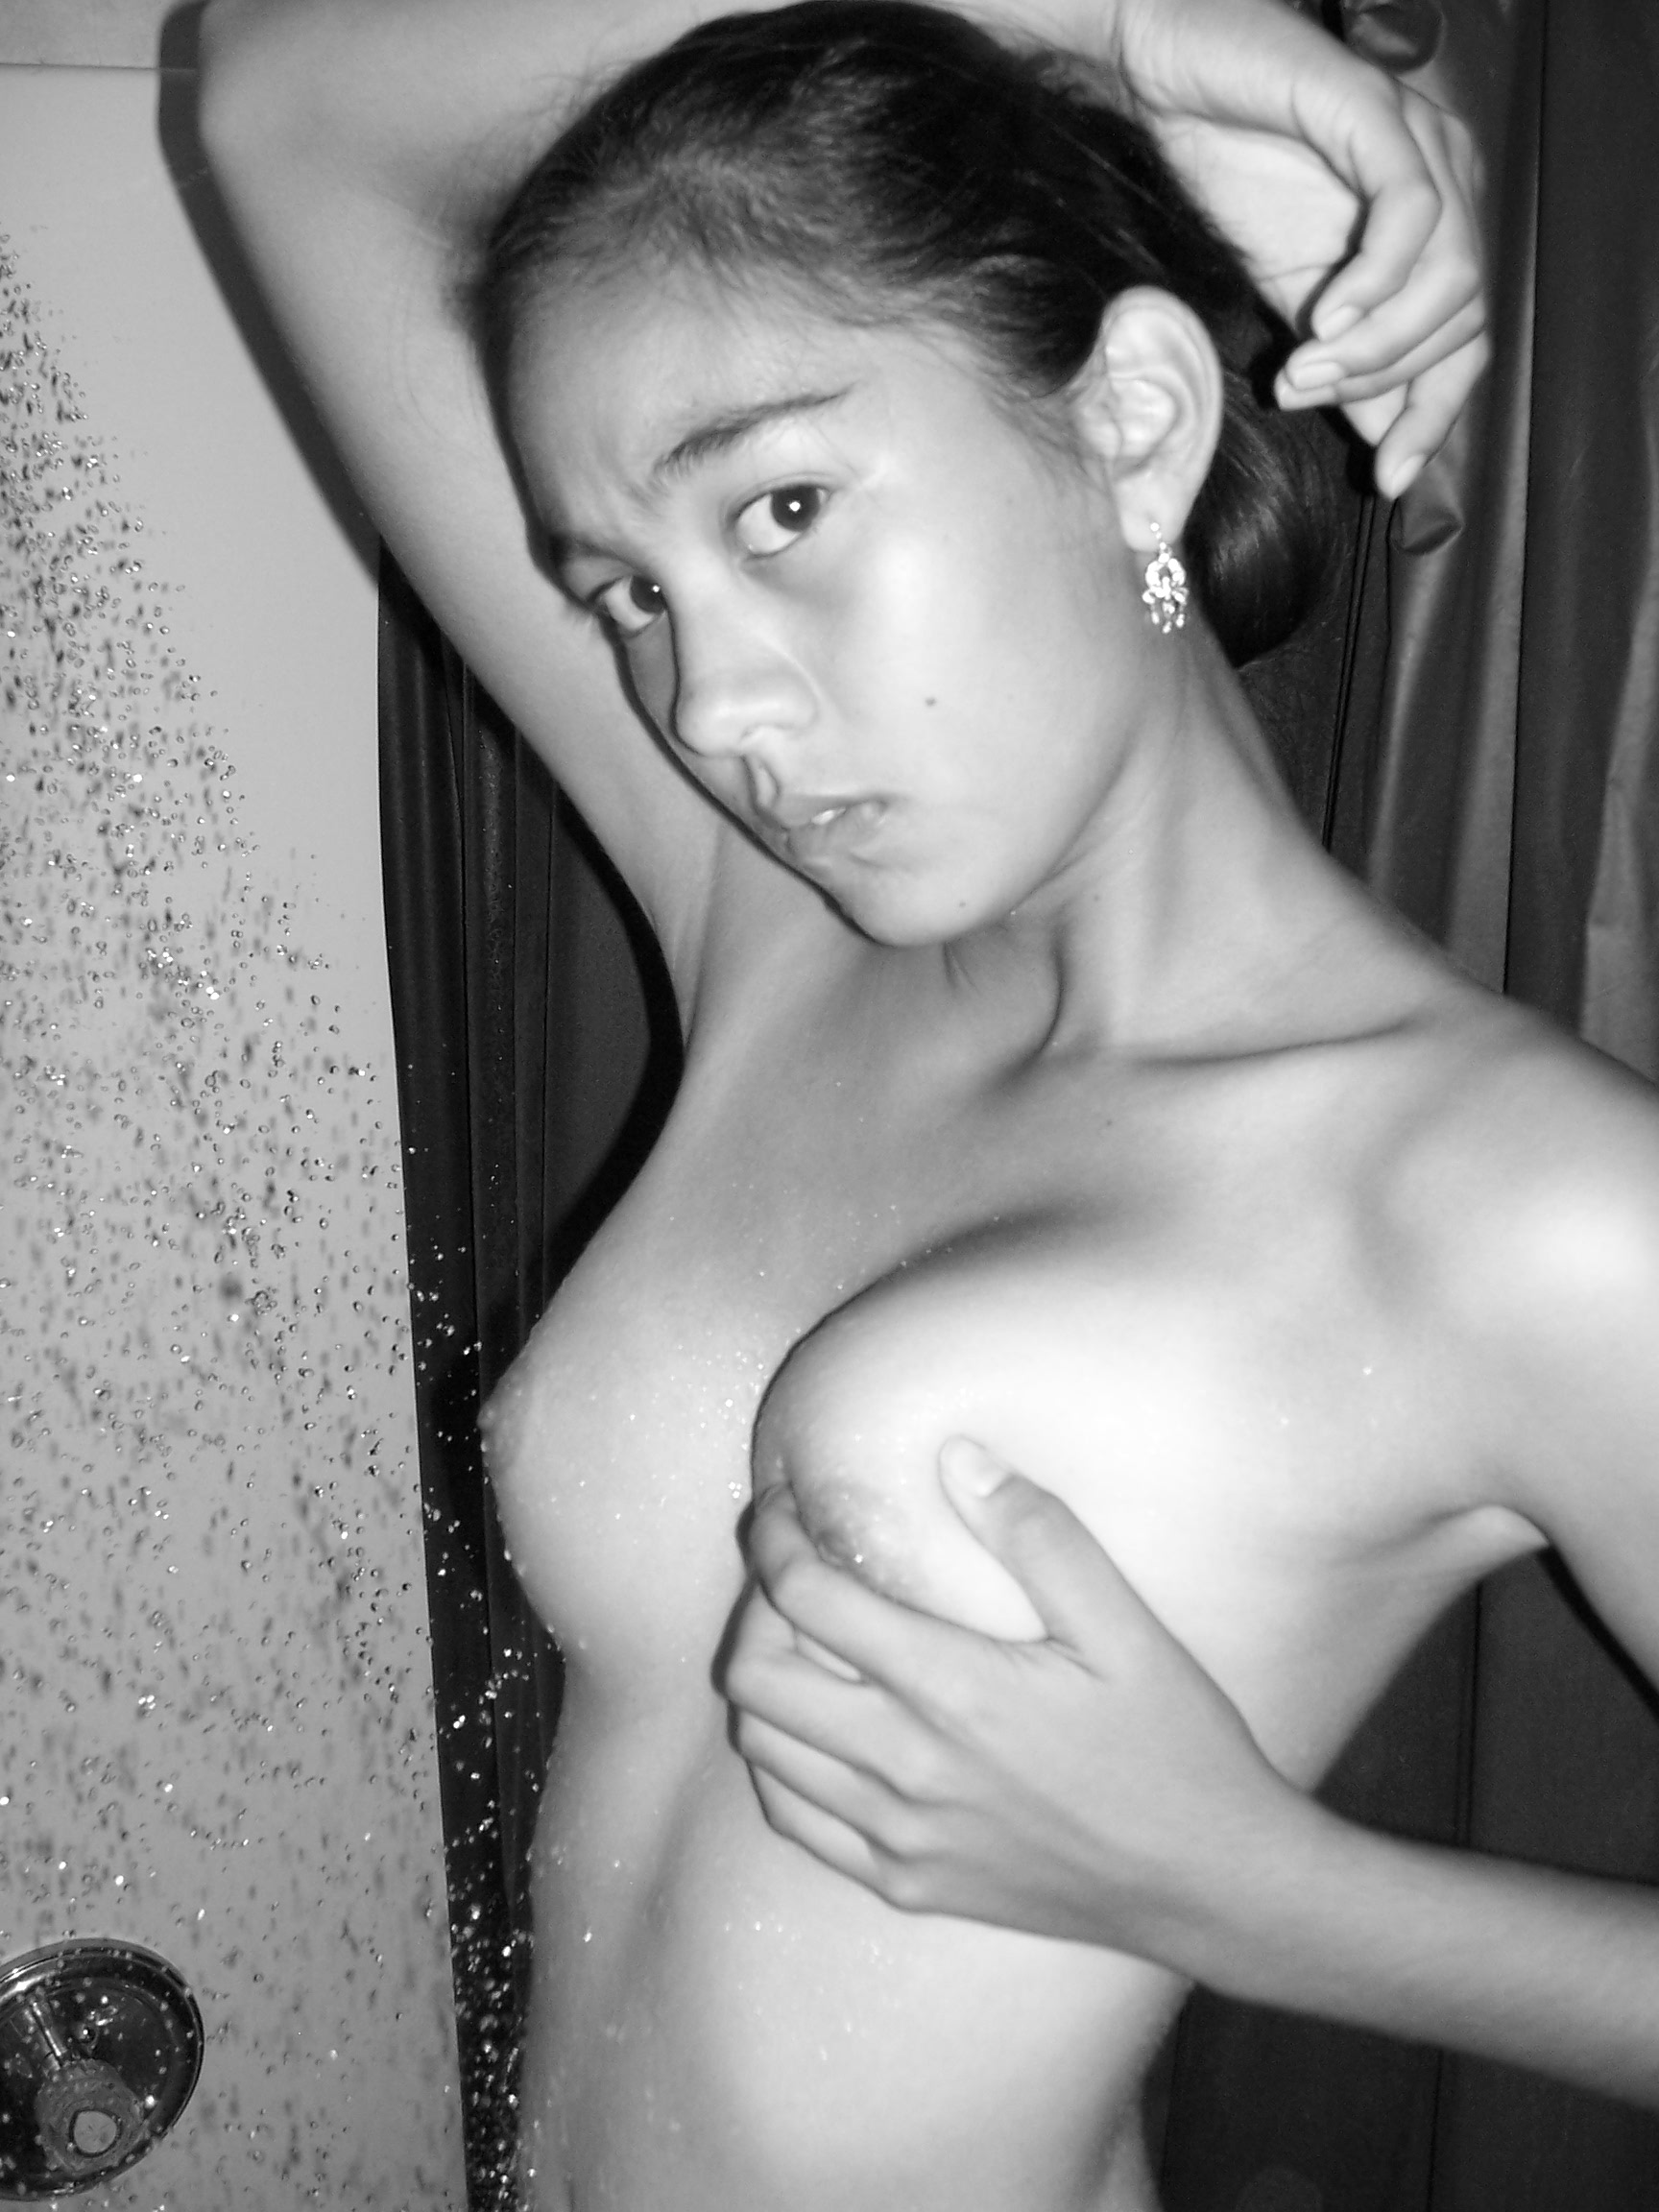 Can private asian girl nude